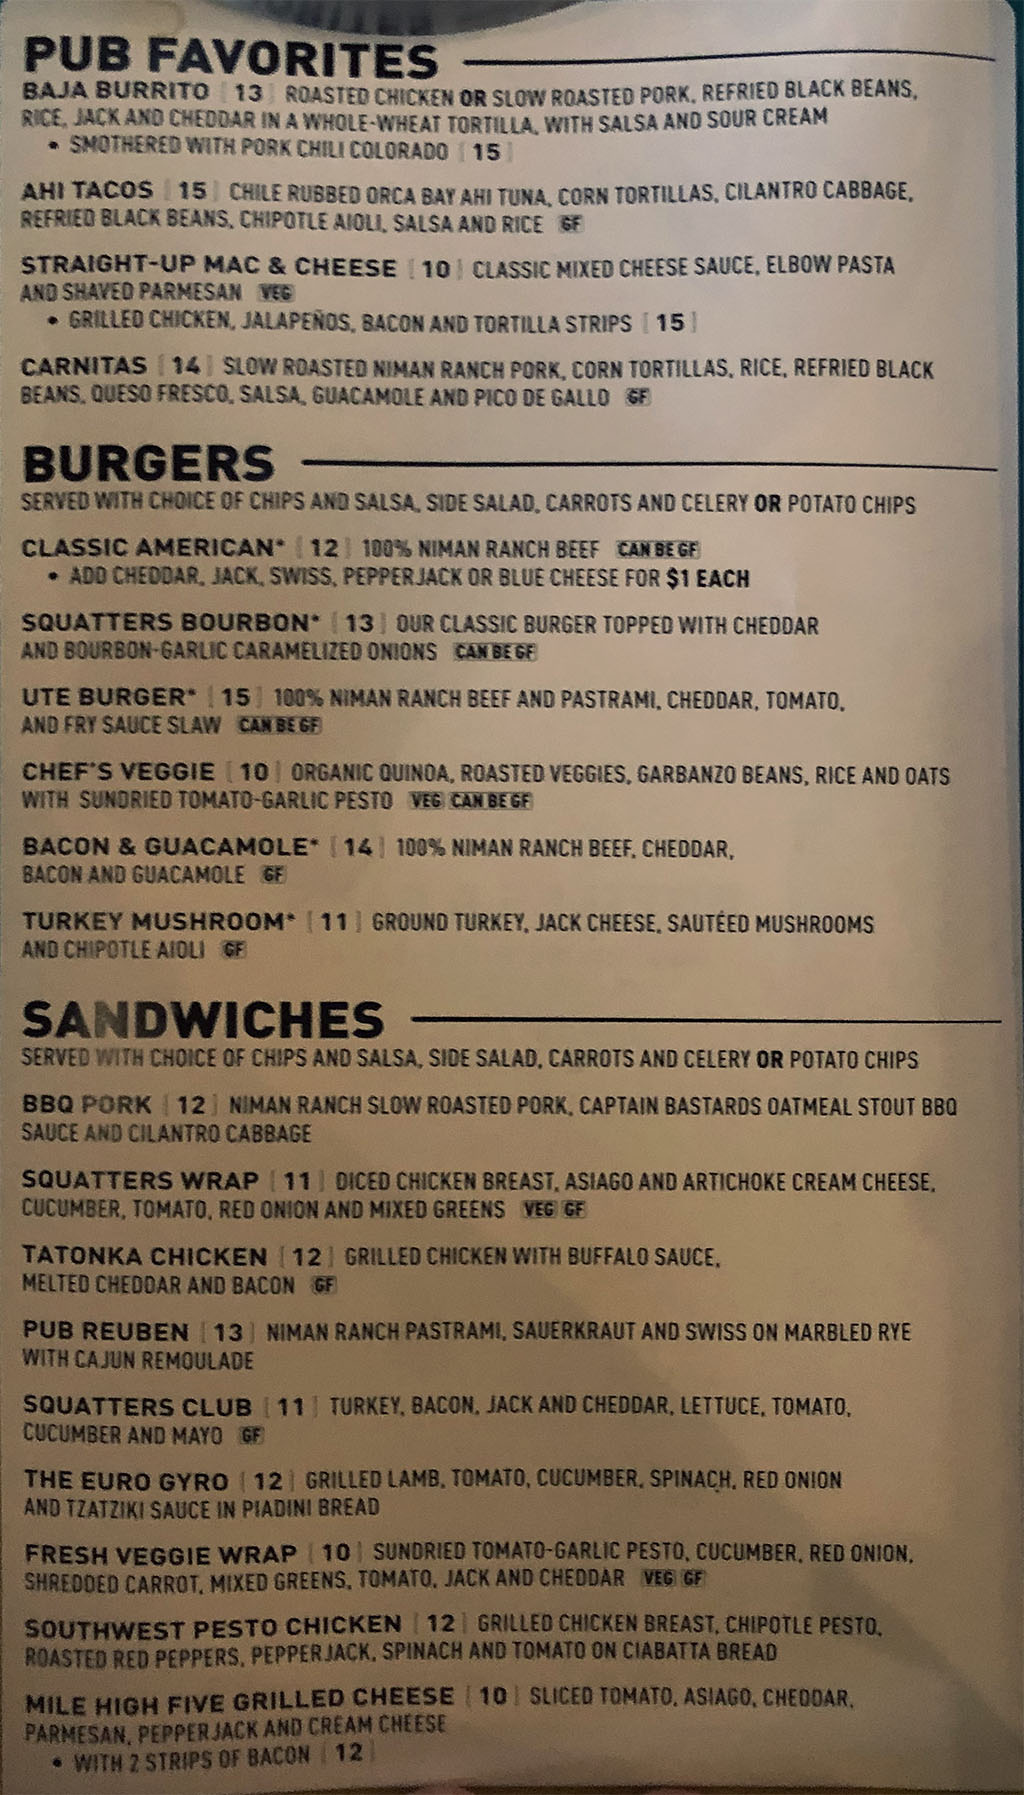 Squatters airport menu - pub favorites, burgers, sandwiches